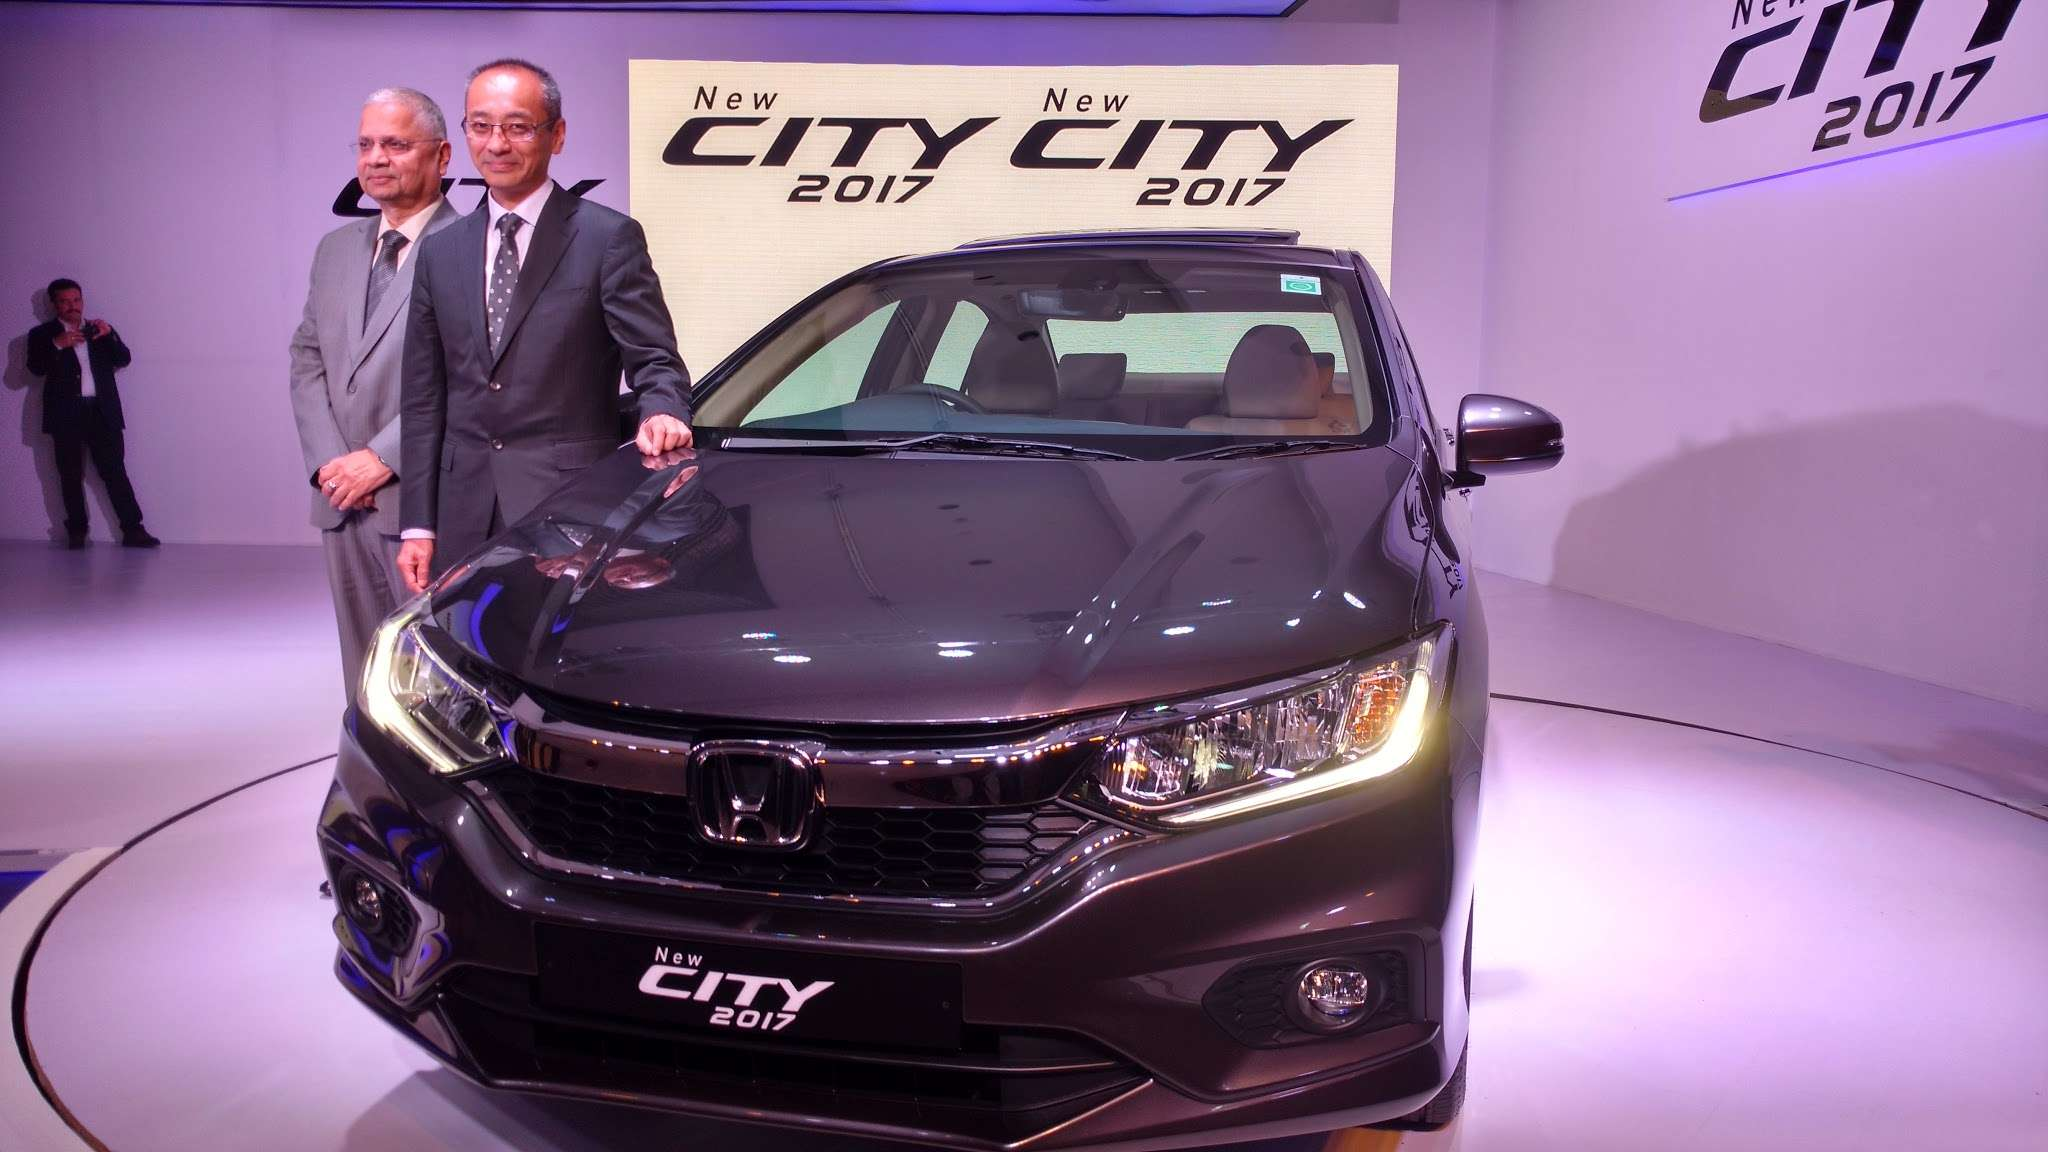 Honda City 2017 Launched In India Prices Start At Rs 8 49 Lakh Ex